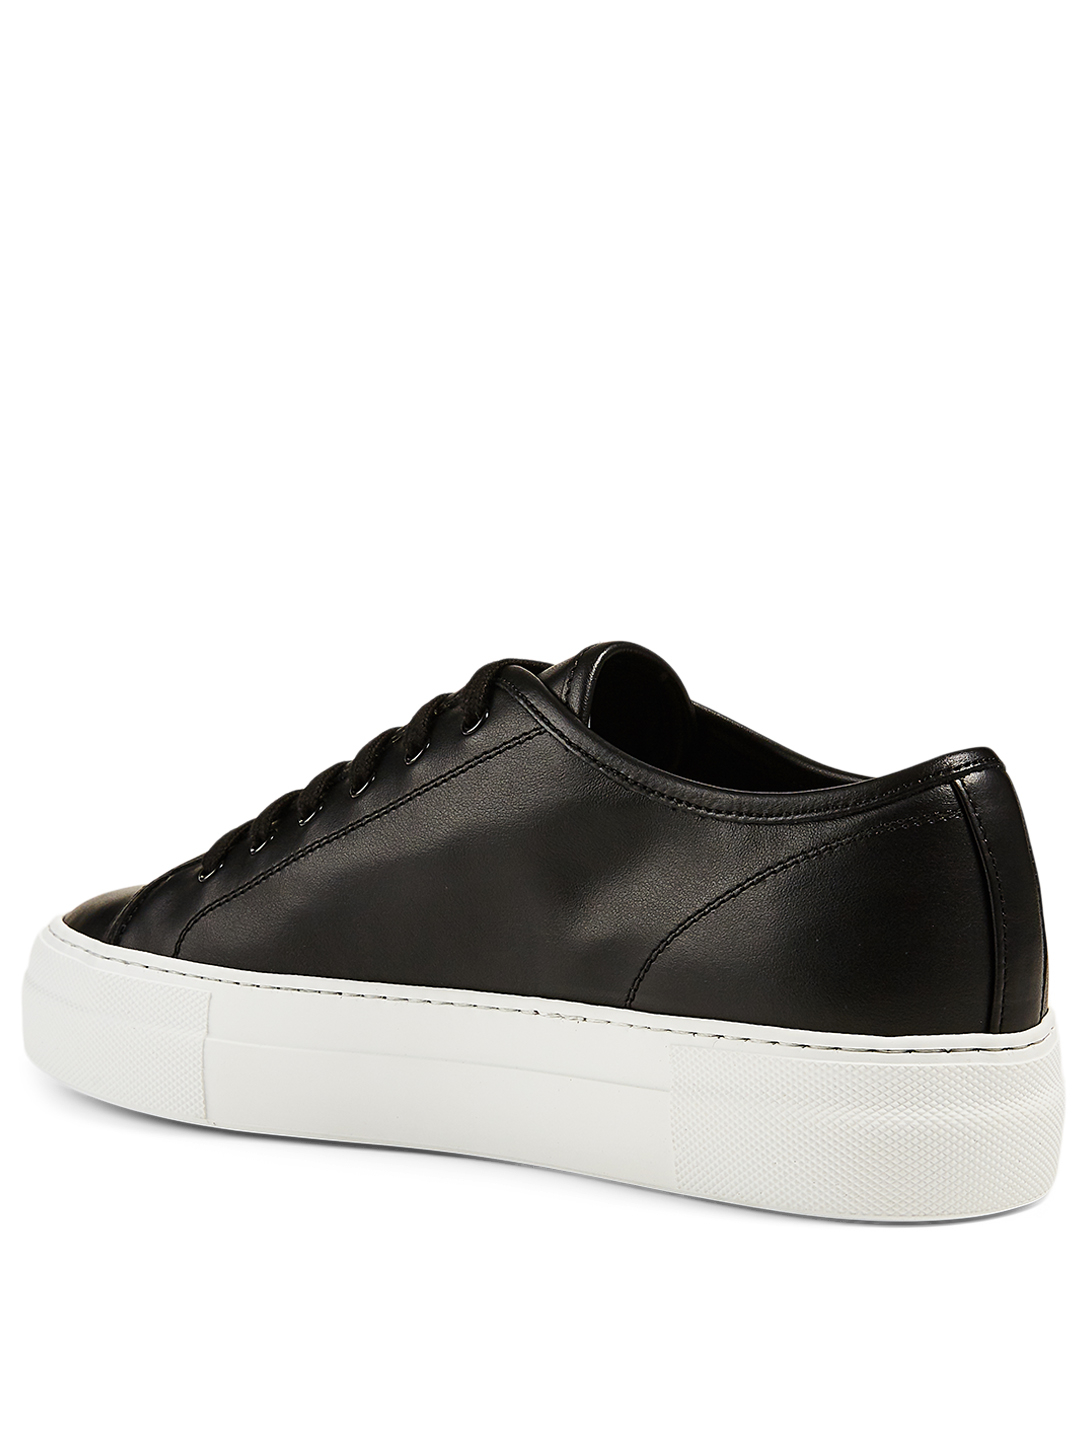 COMMON PROJECTS Tournament Super Sole Leather Sneakers Women's Multi